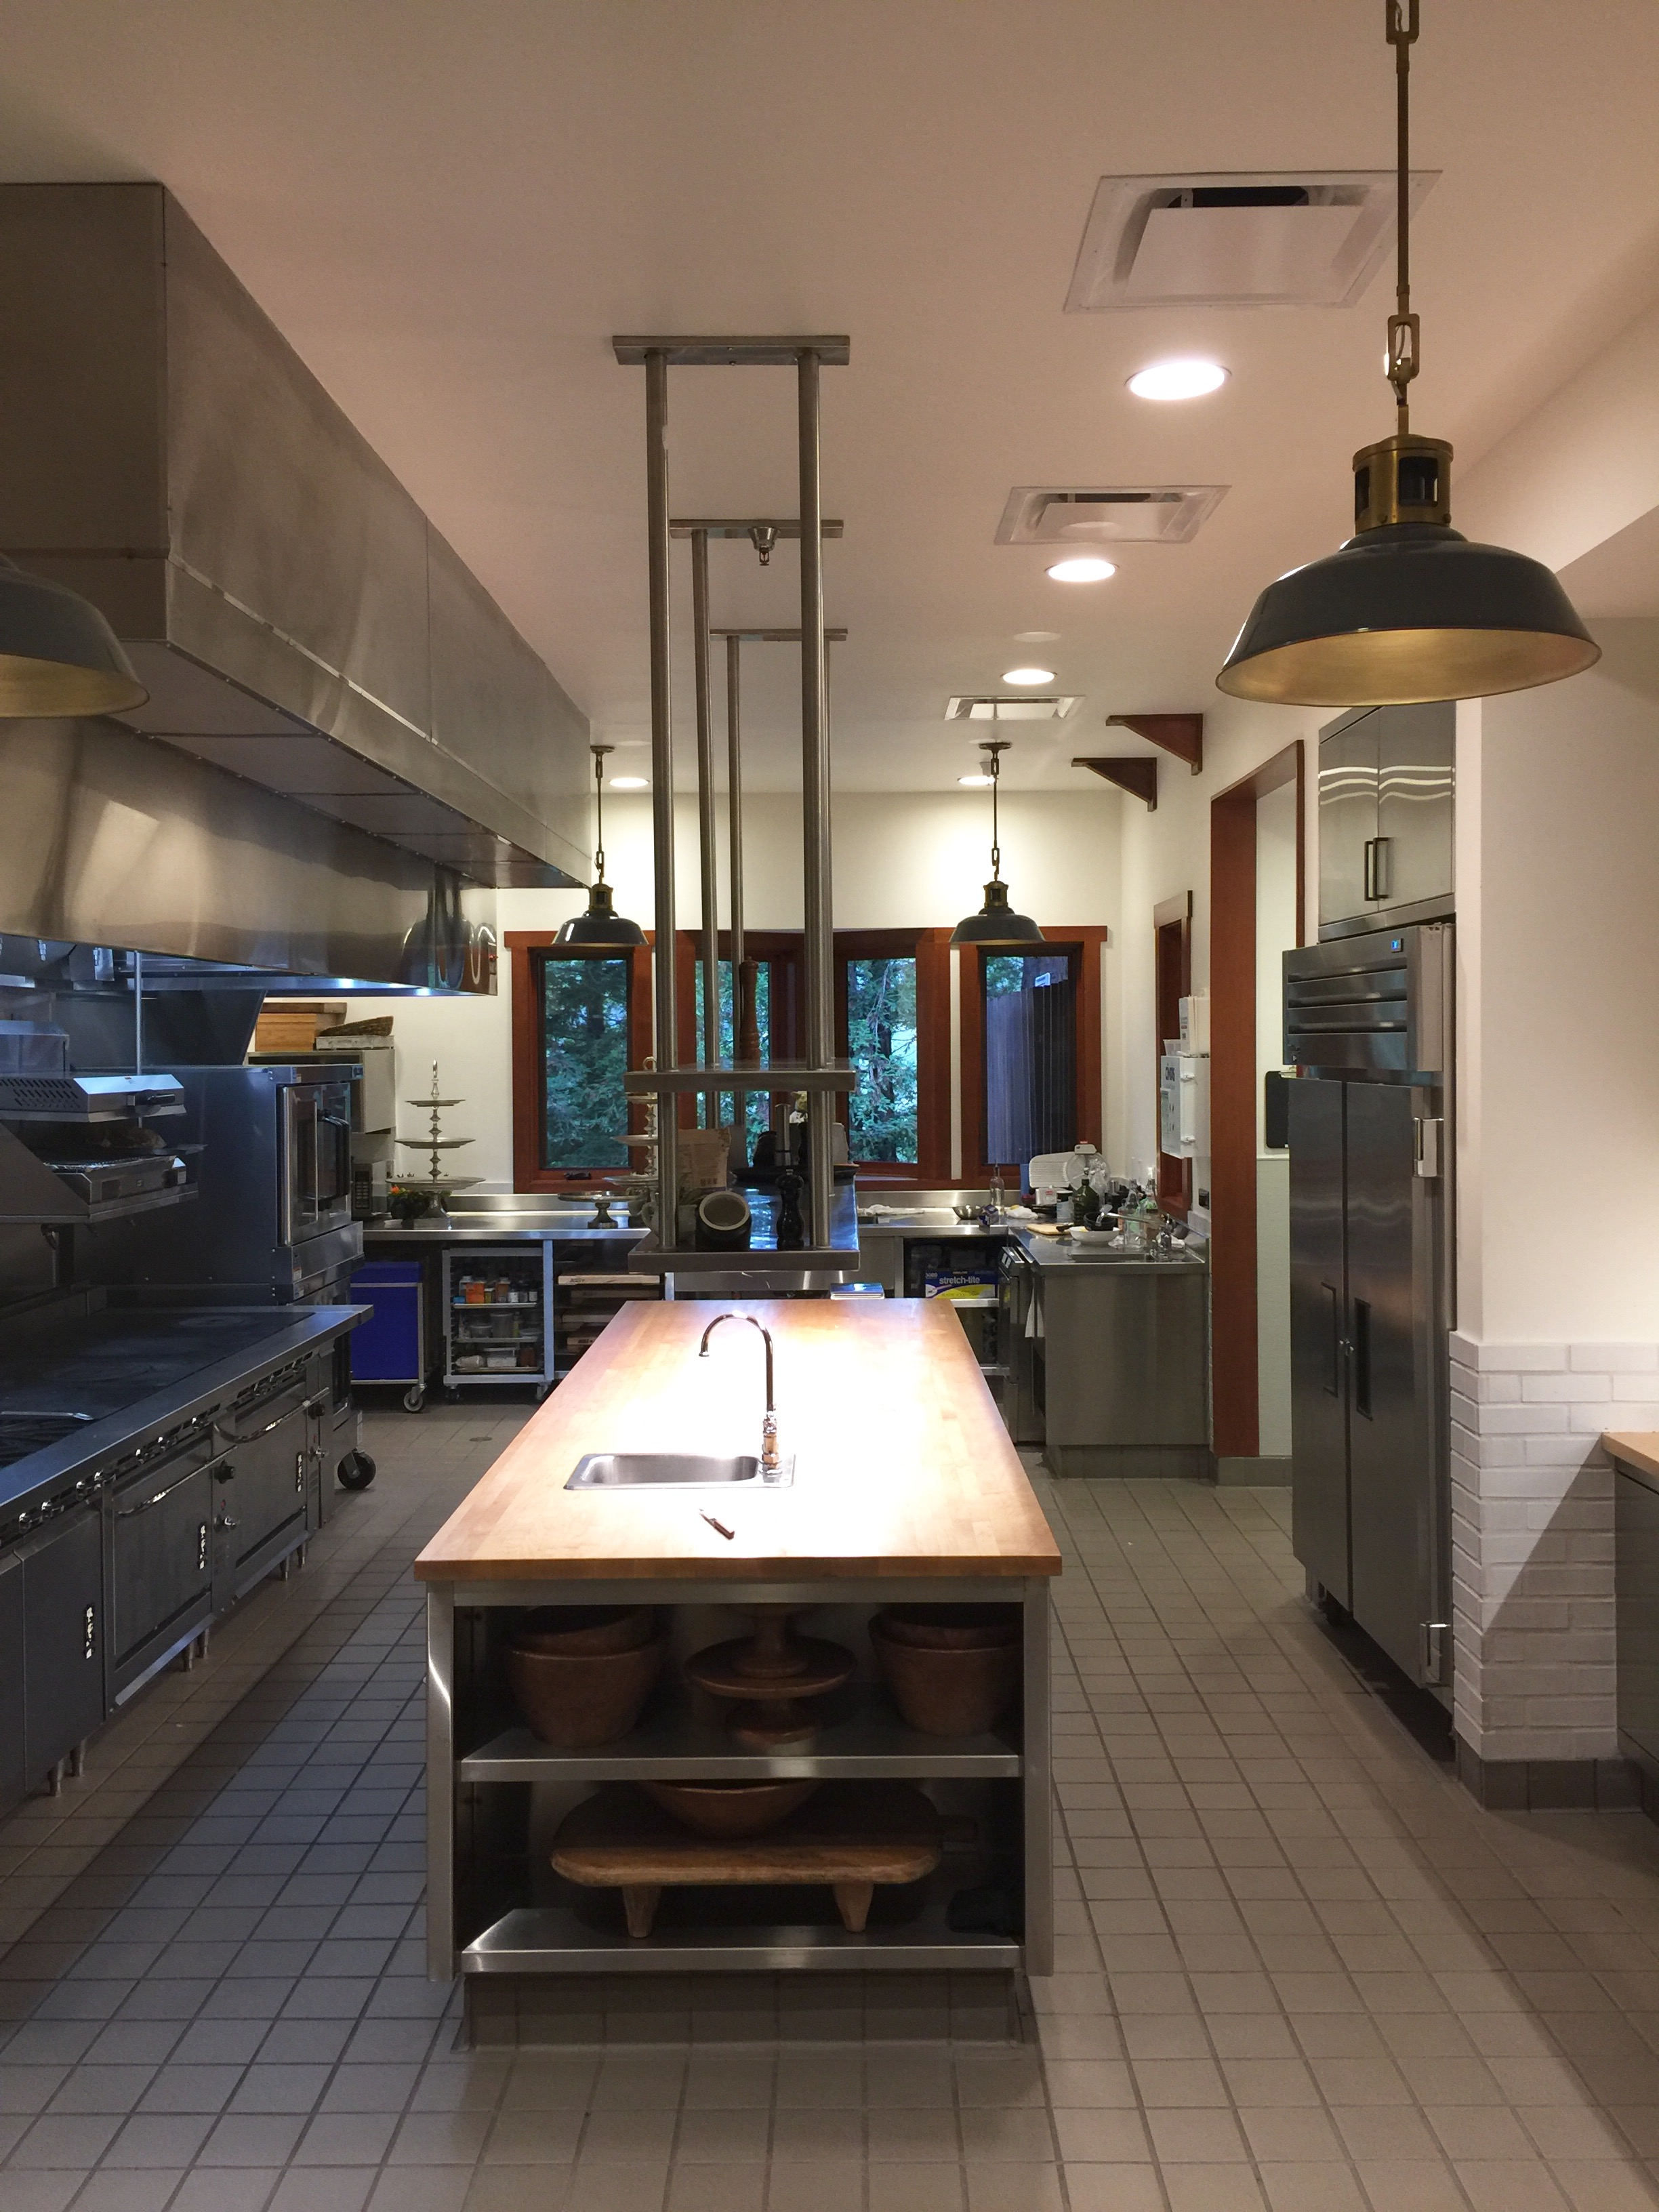 Professional kitchen for catering at Joseph Phelps